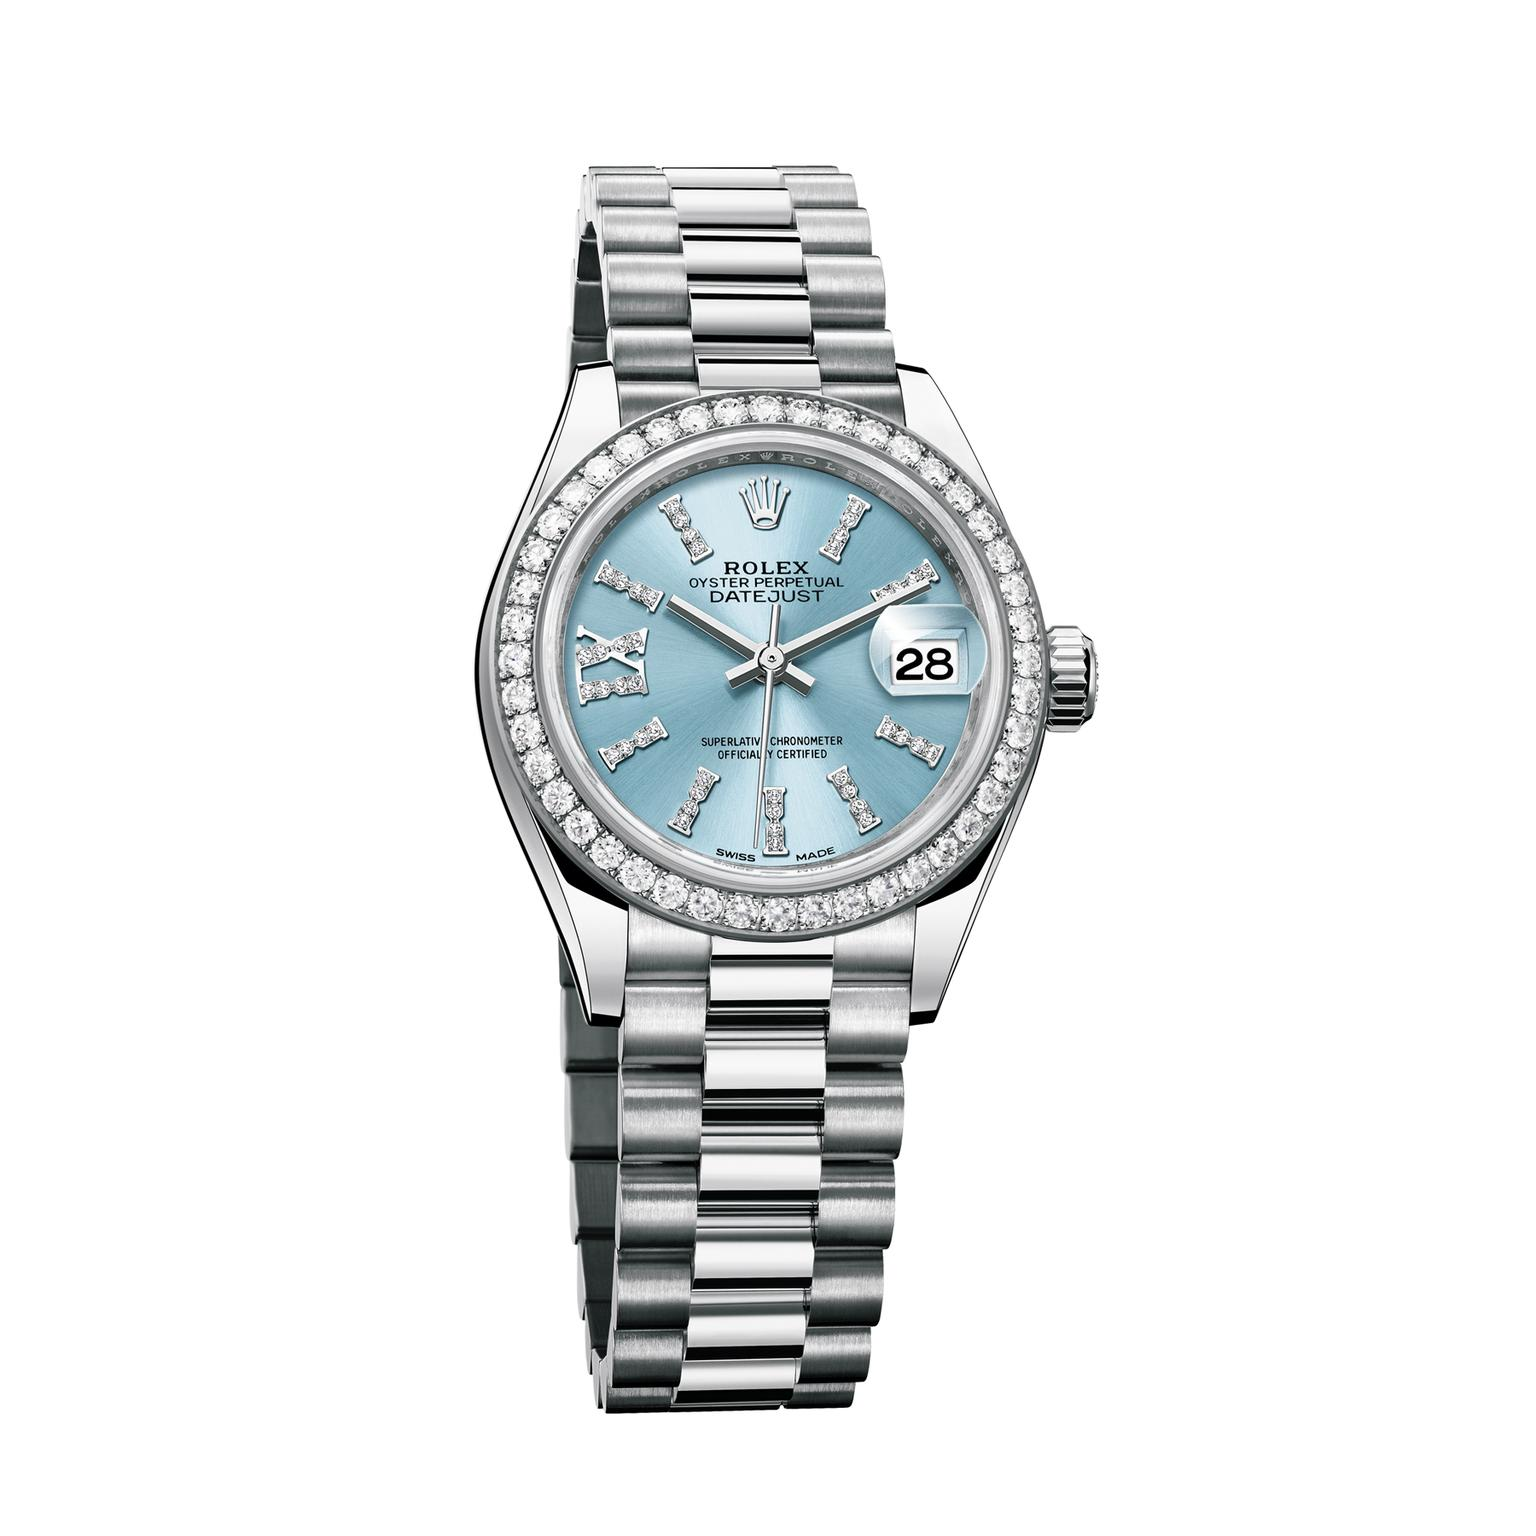 Rolex Ladies Watches Oyster Perpetual Lady Datejust 28mm Watch In Platinum